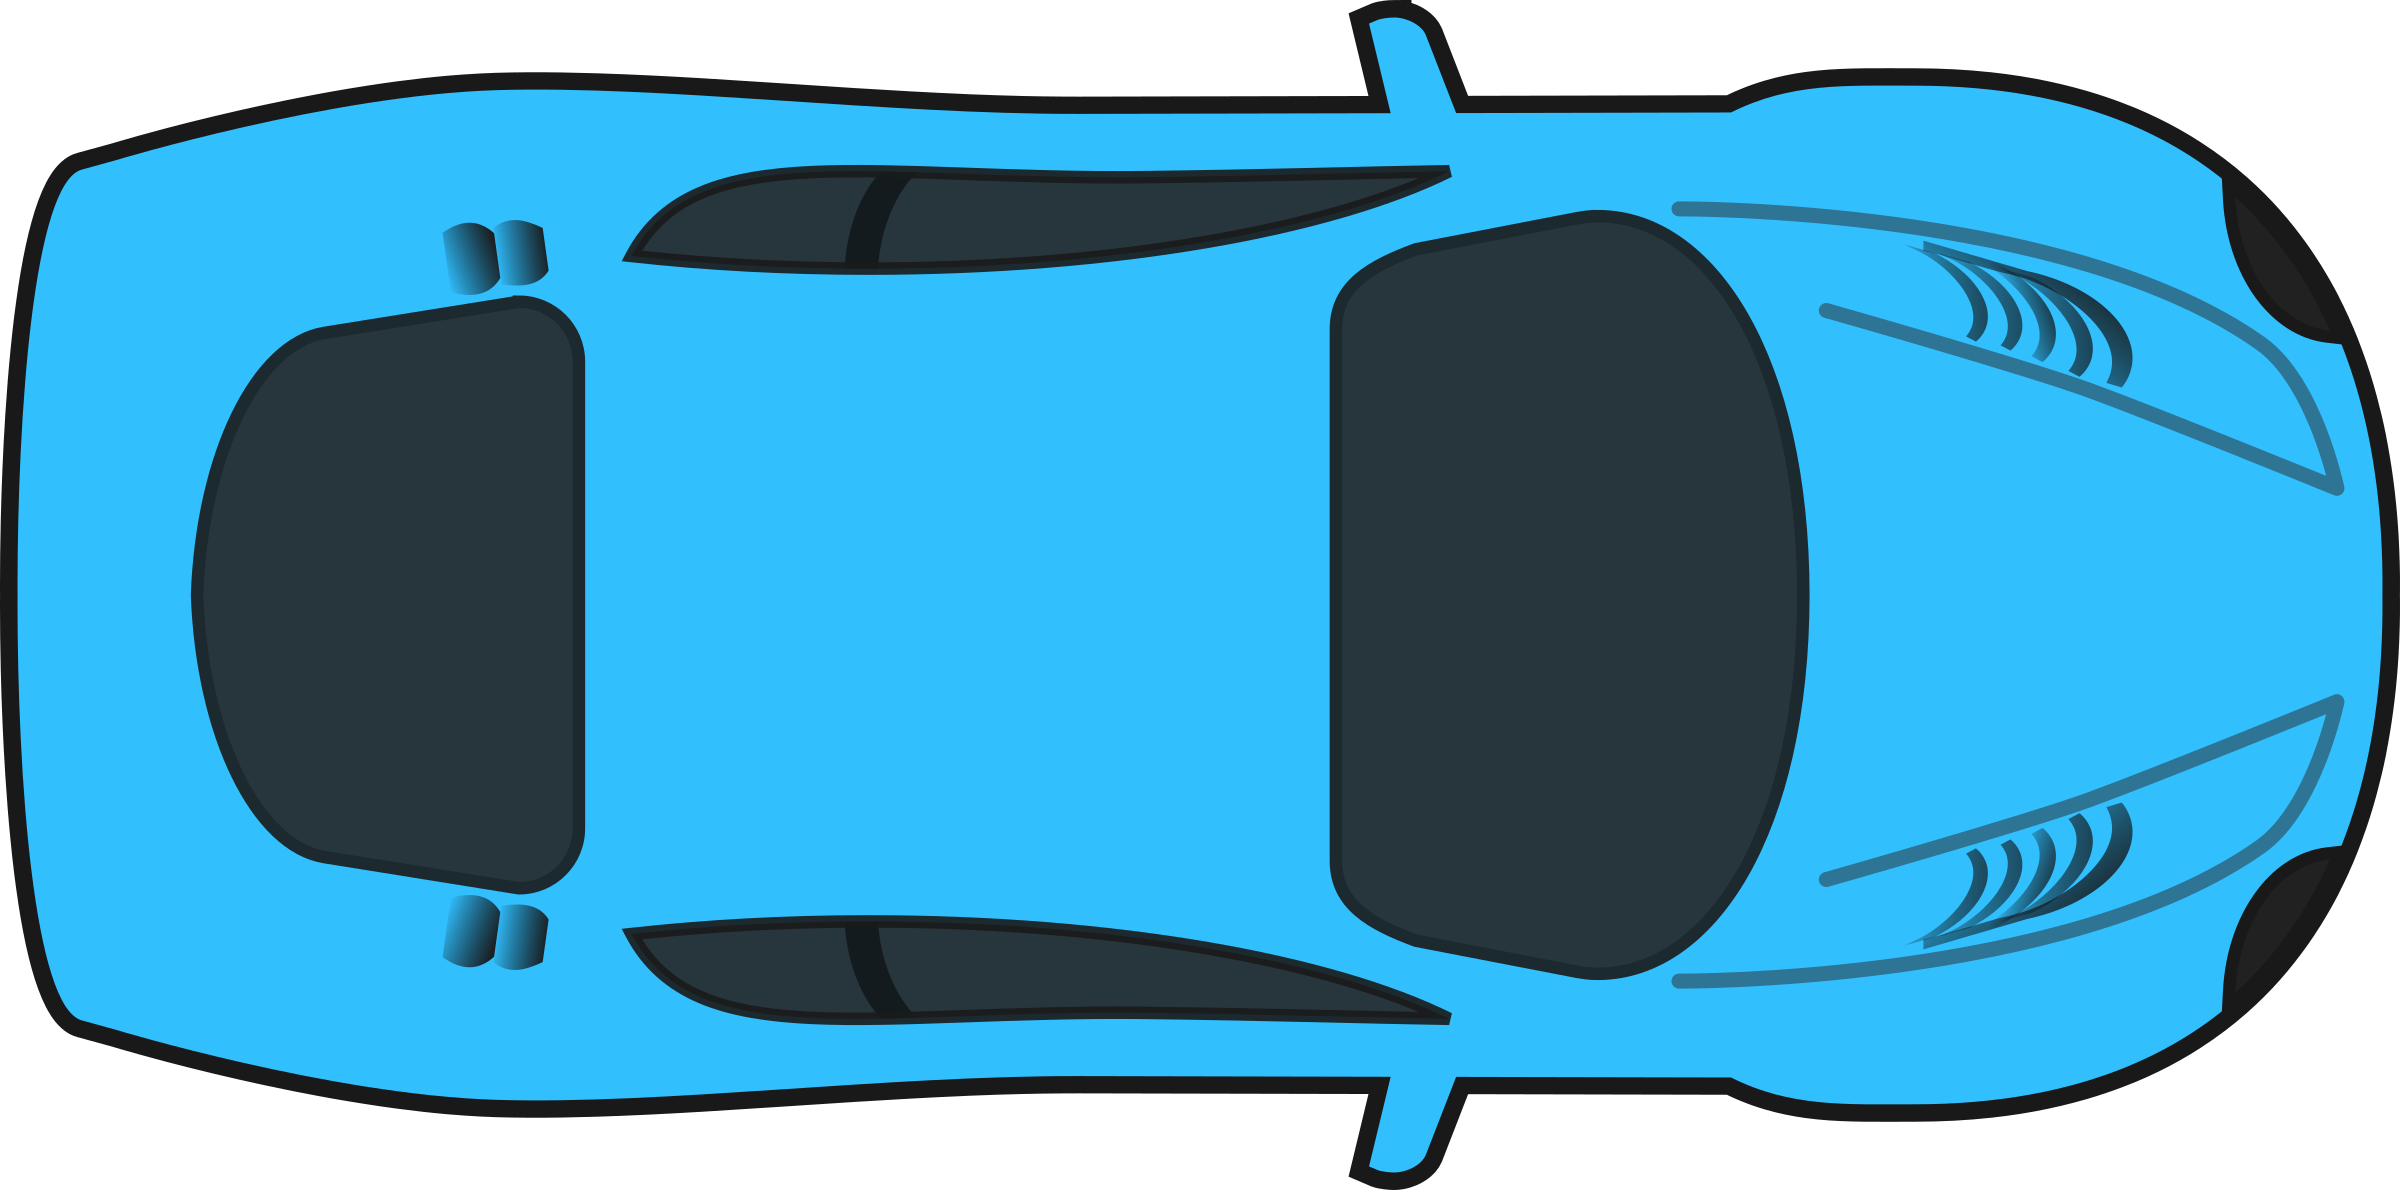 Blue Racing Car (Top View) by qubodup